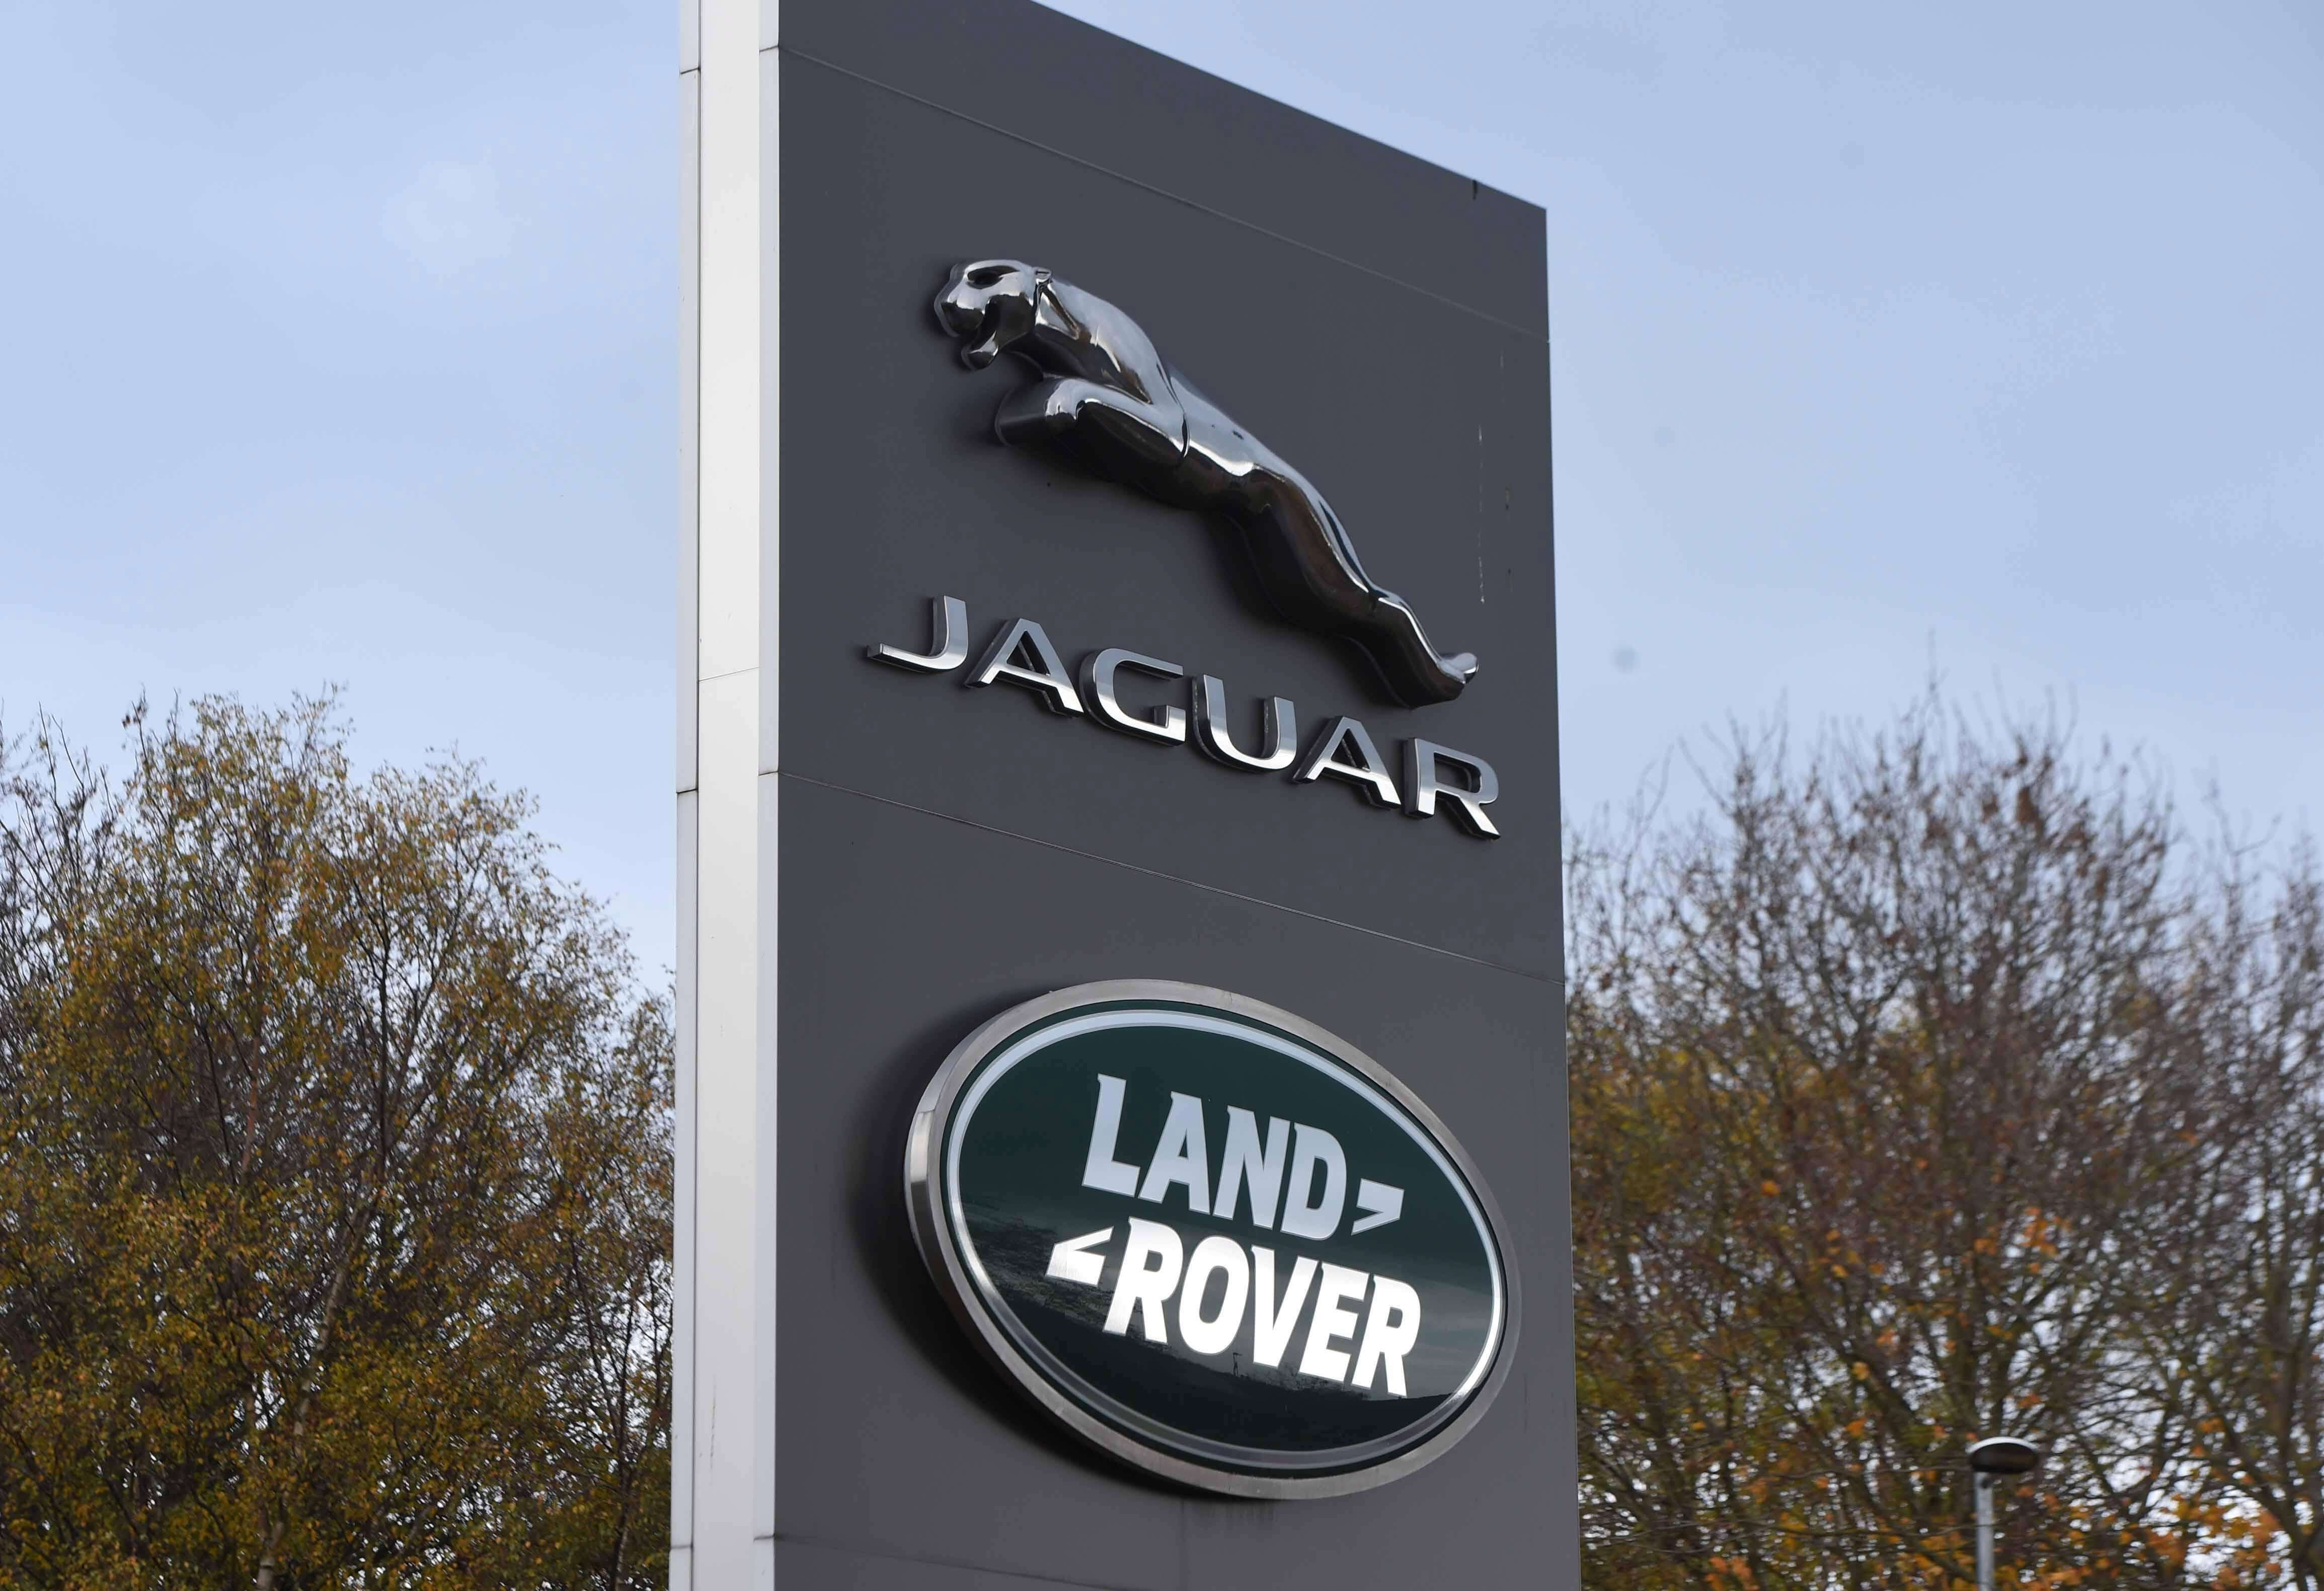 Jaguar Land Rover to Cut Jobs after China, Diesel Demand Fall